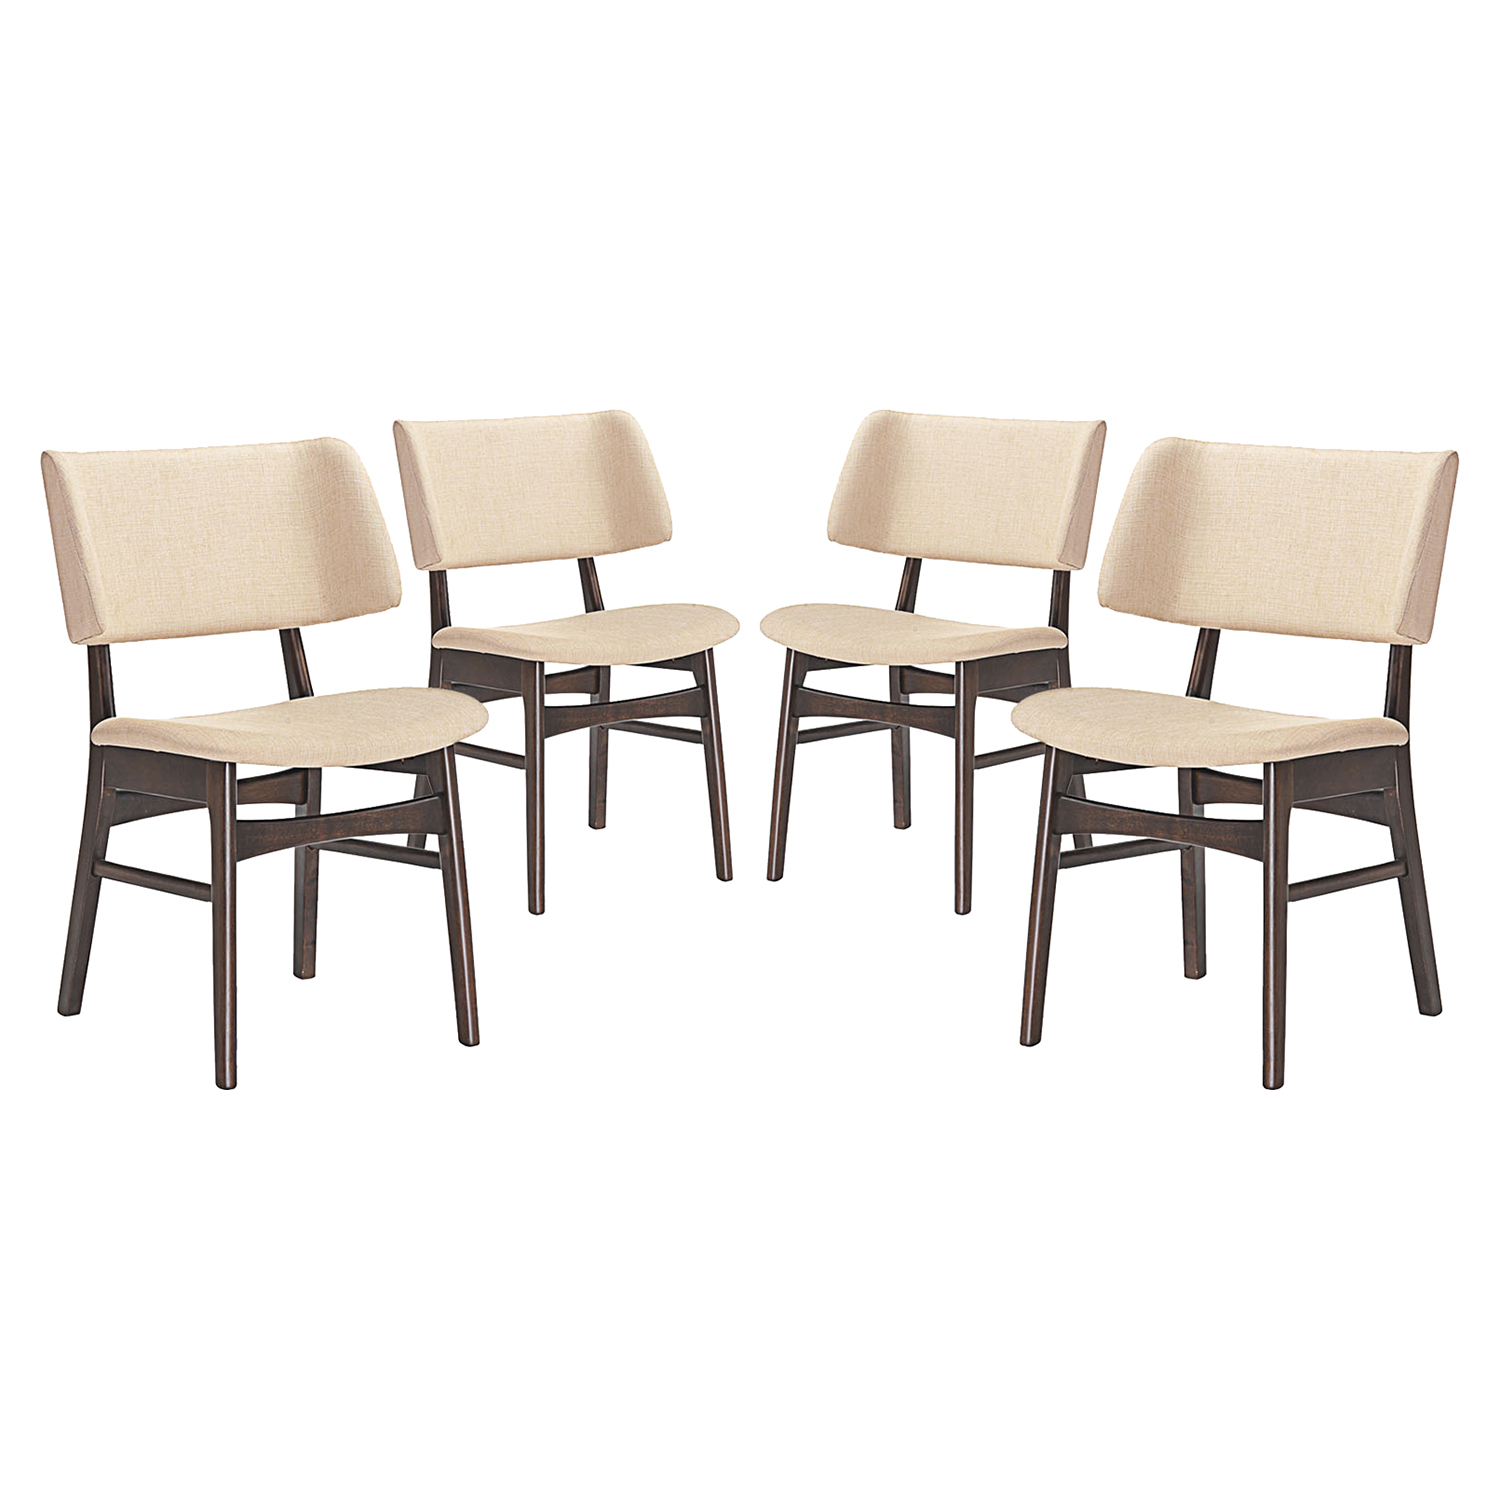 Vestige Upholstery Dining Side Chair - Wood Frame (Set of 4) - EEI-2062-WAL-SET